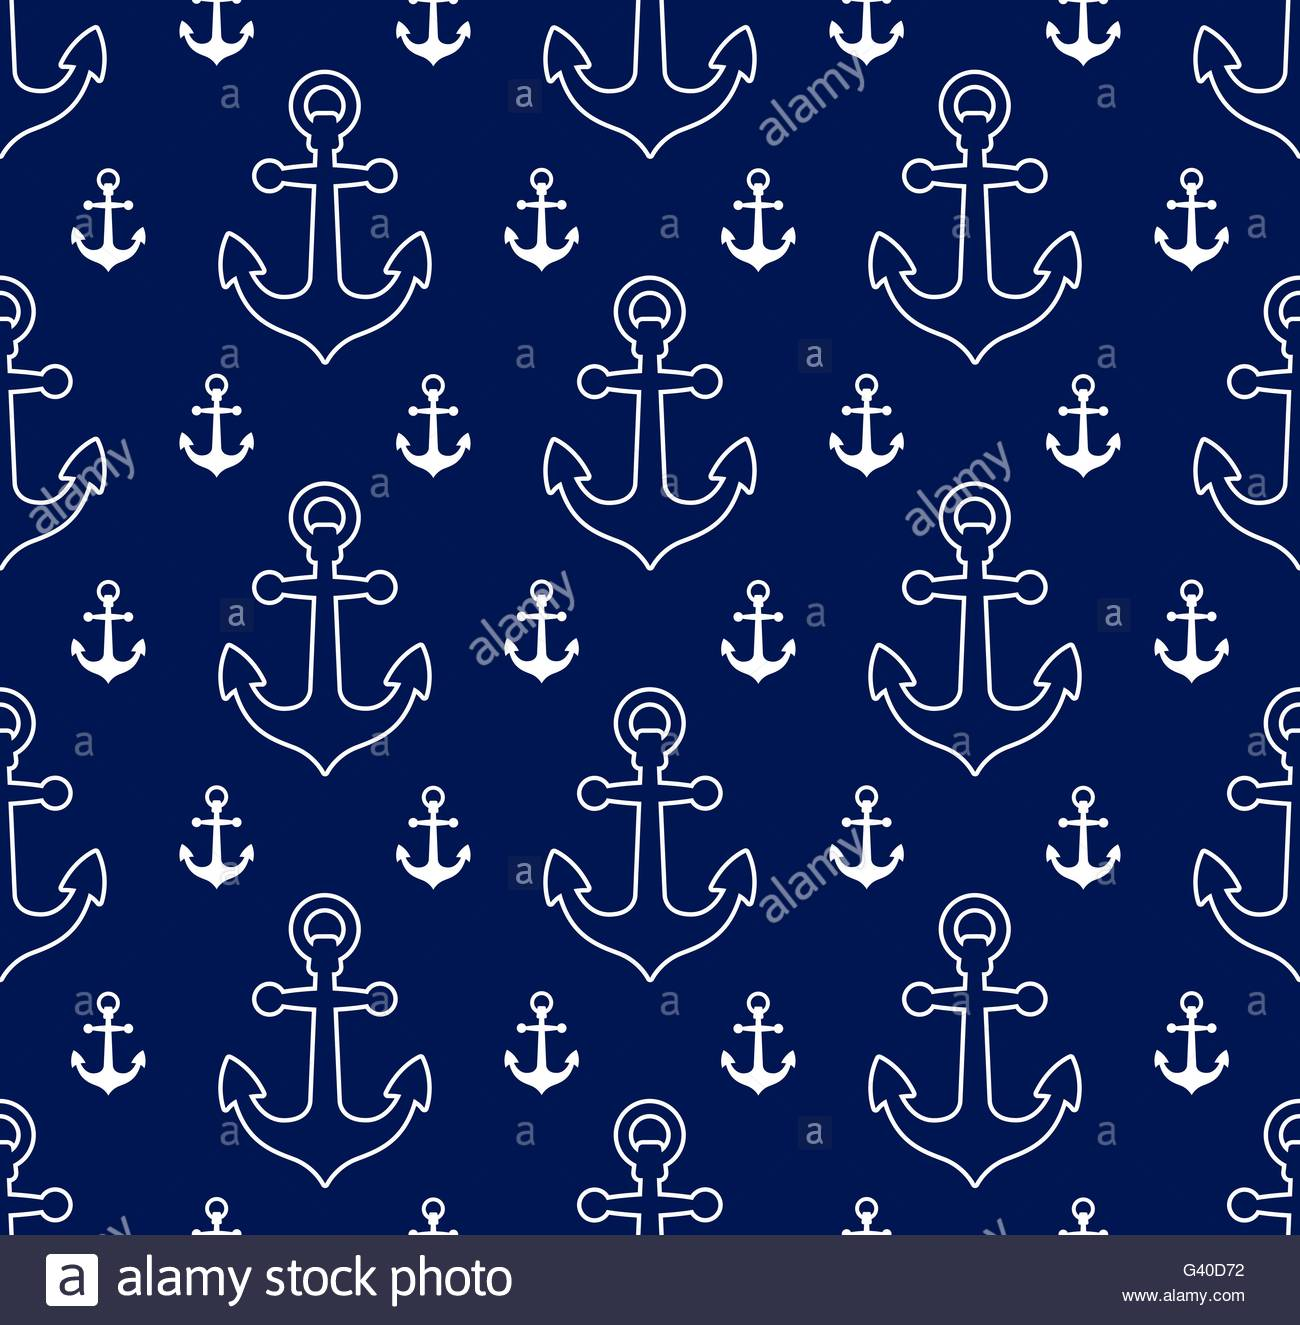 Vector image of seamless pattern anchors over blue background 1300x1325